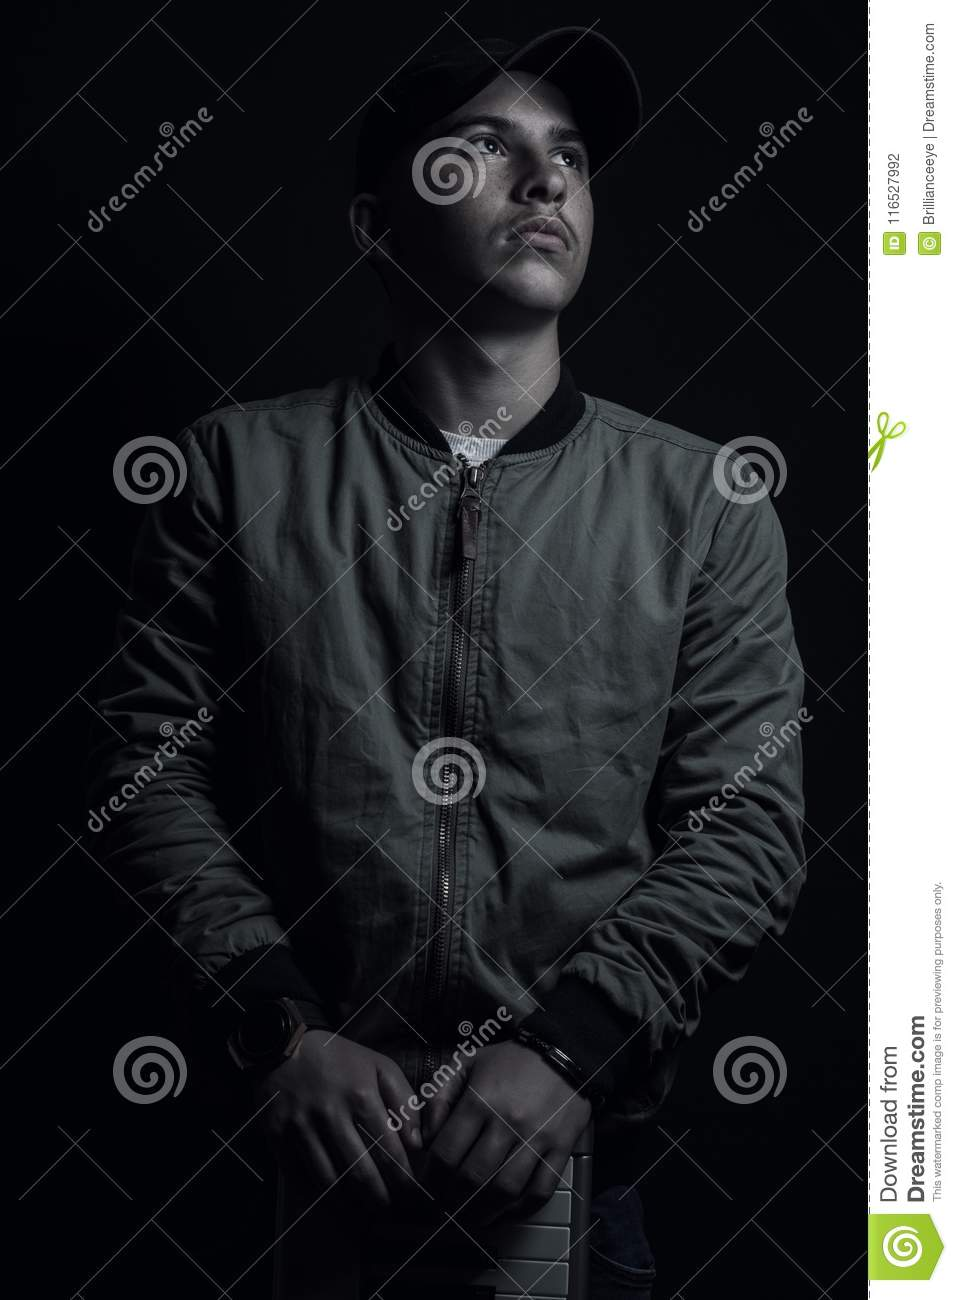 Teen boy posing looking up with black cap and bomber jacket in front of black background